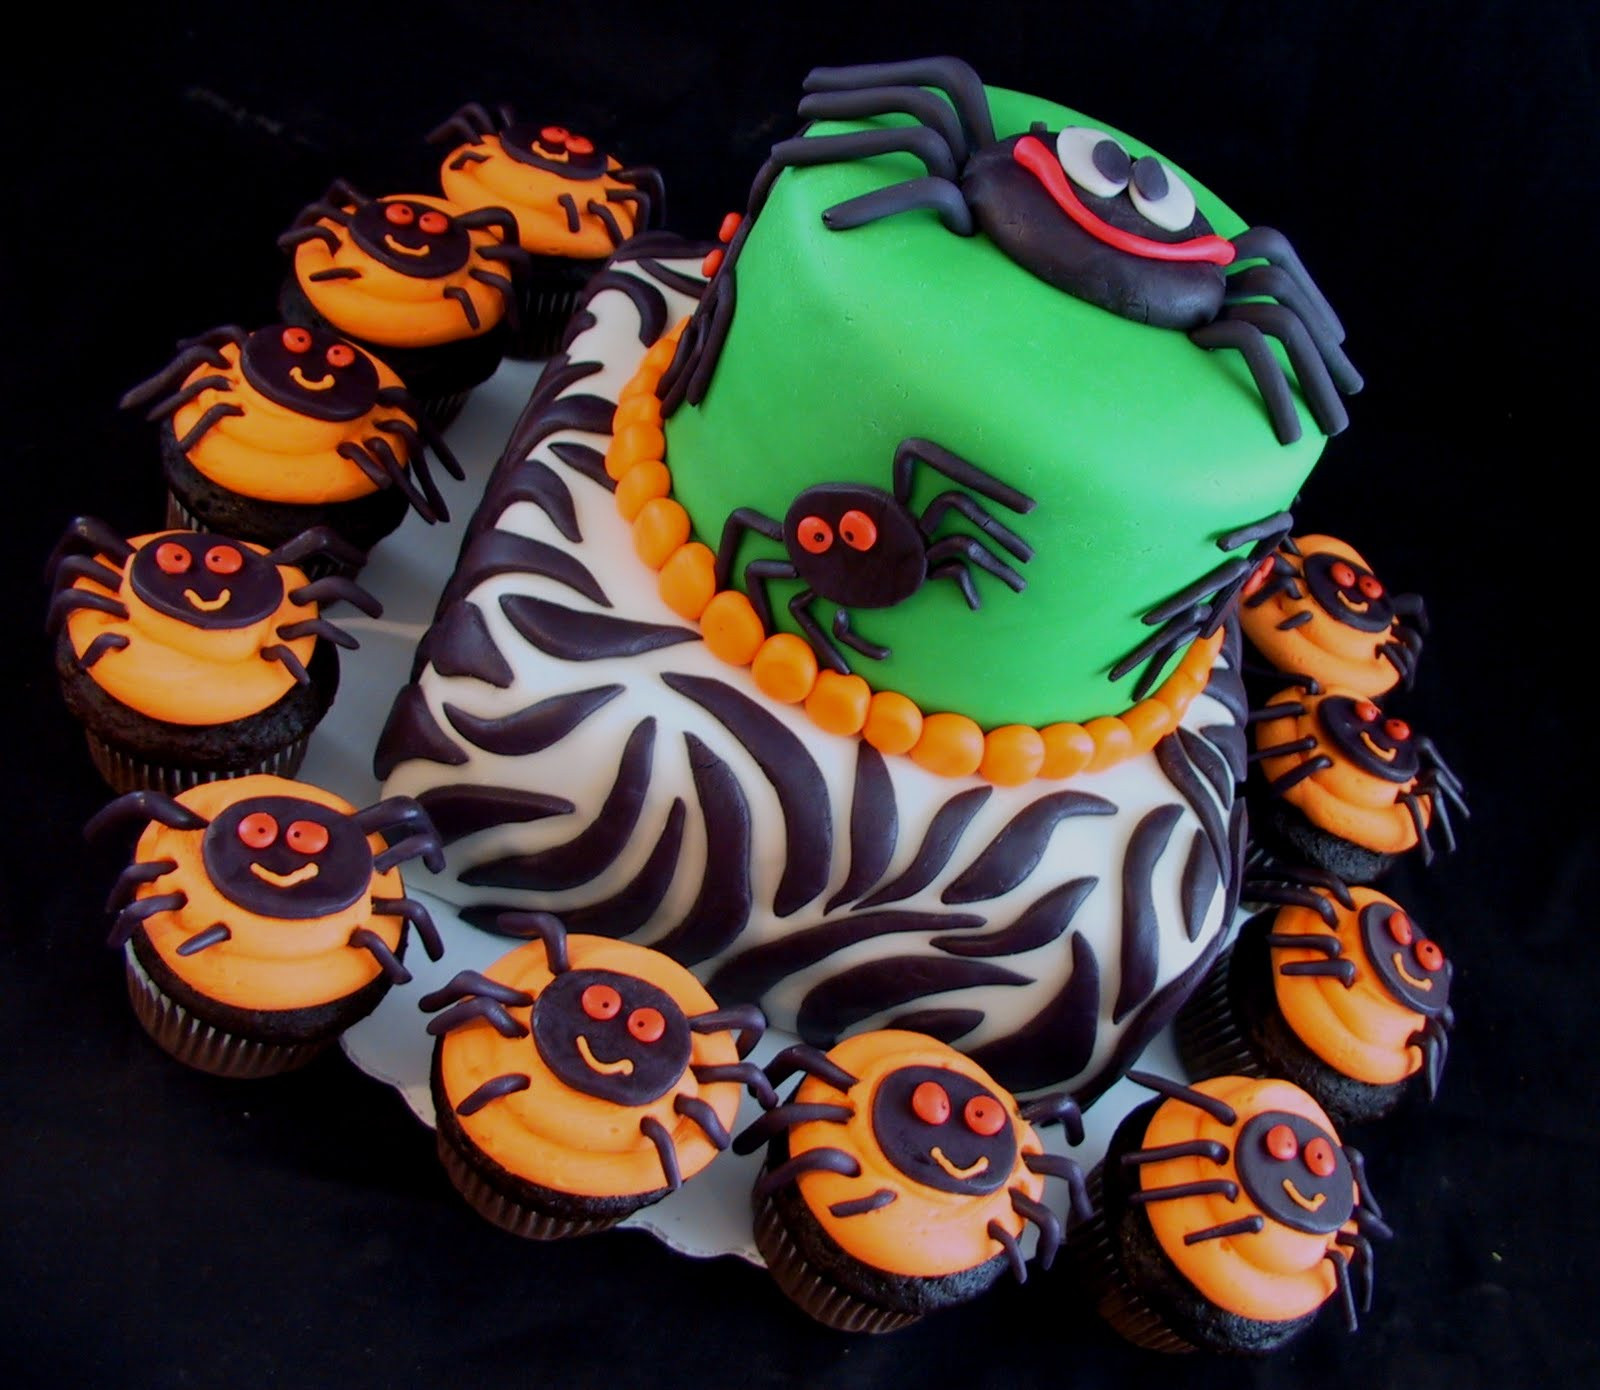 Halloween Cakes Images  Birthday Cake Center Halloween Birthday Cakes 2011